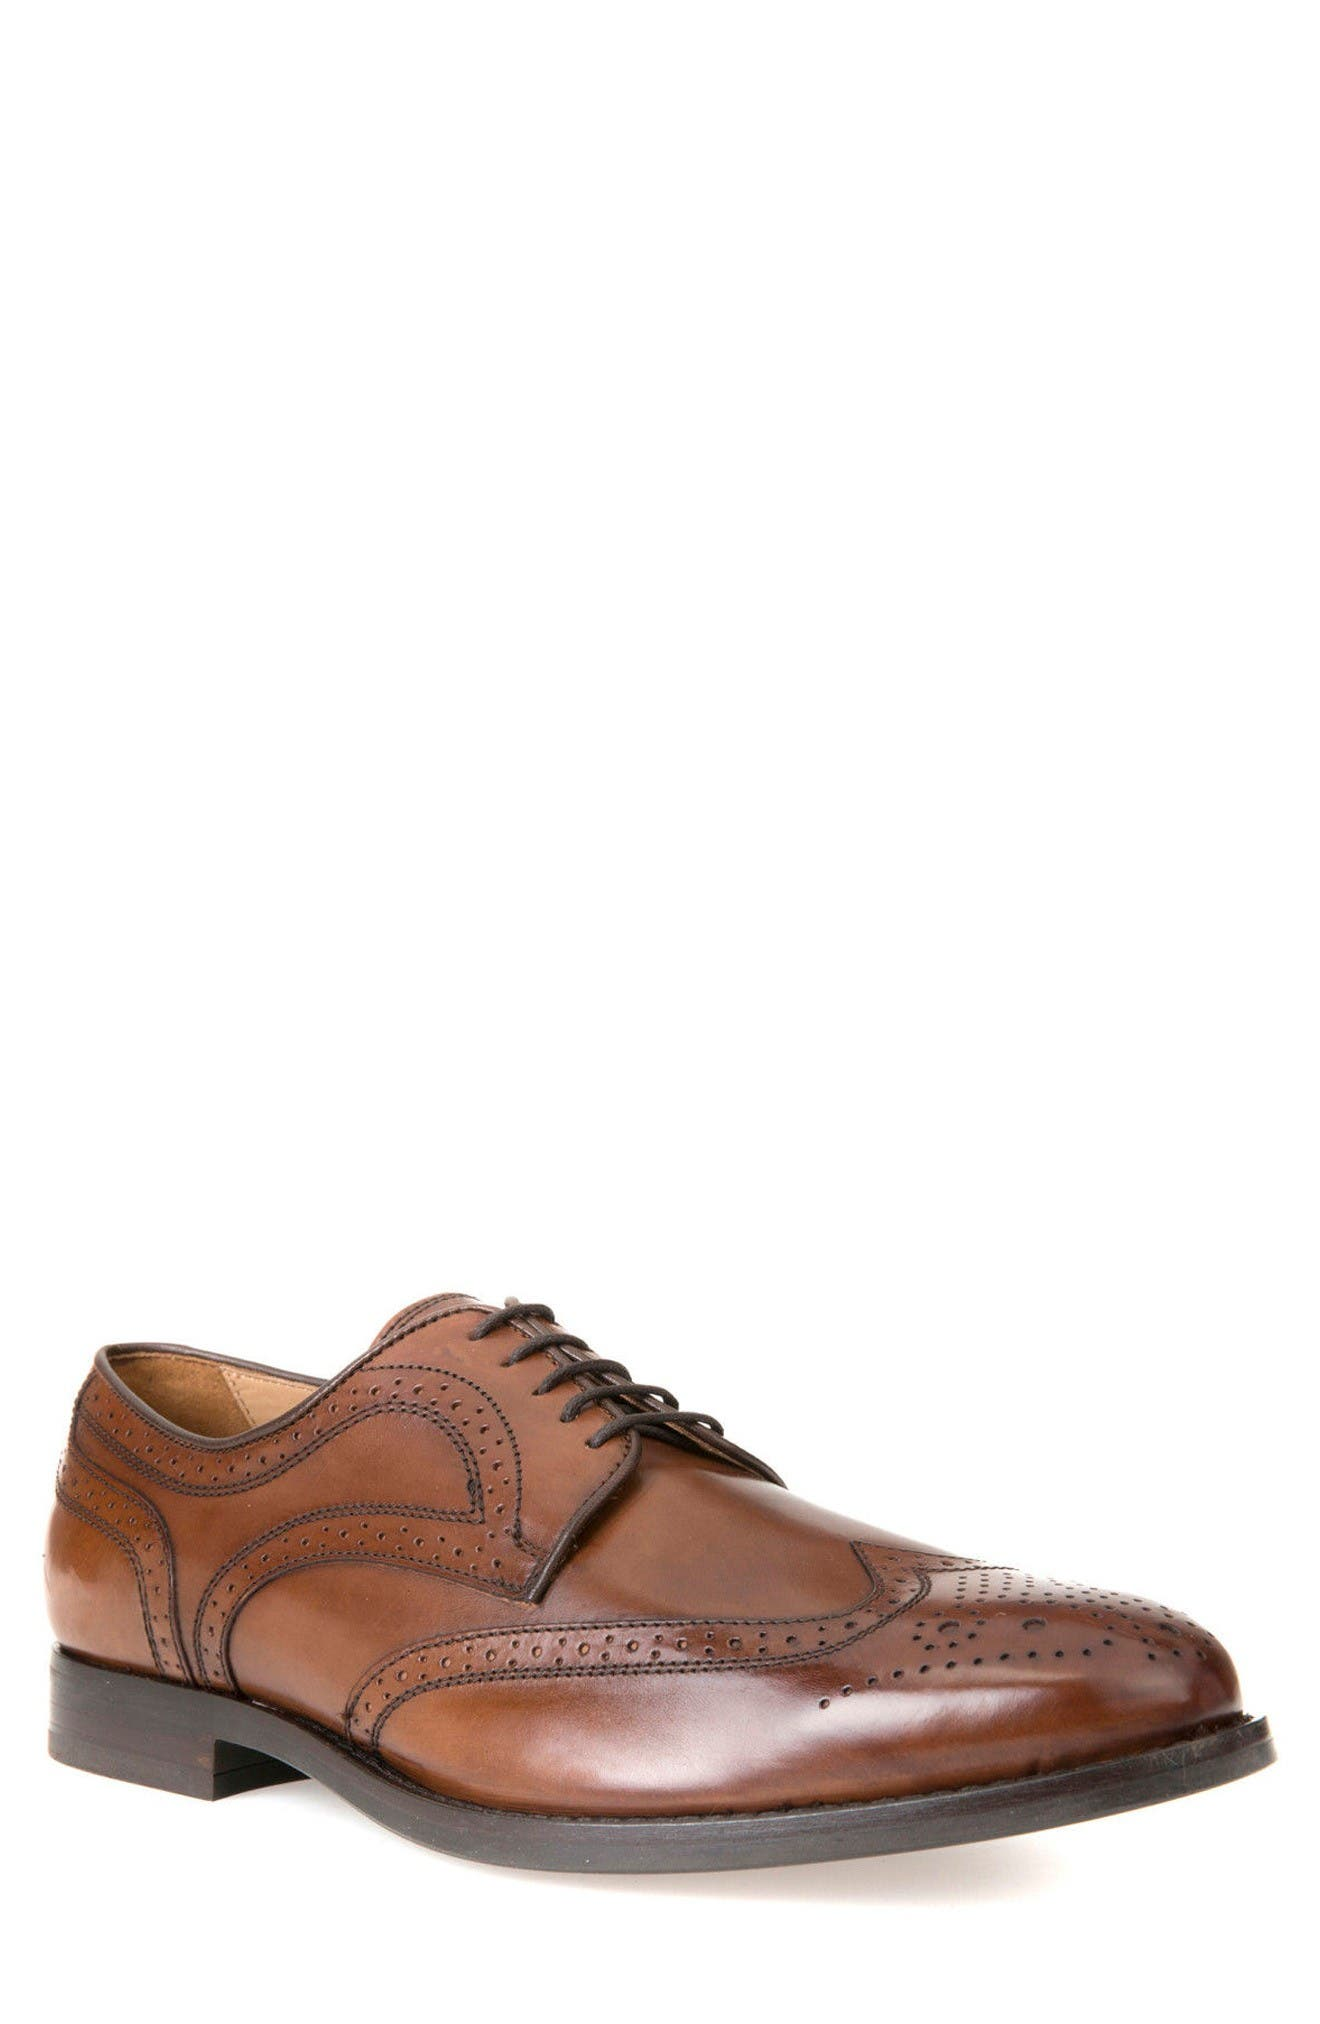 Hampstead 5 Wingtip,                             Main thumbnail 1, color,                             Dark Cognac Leather